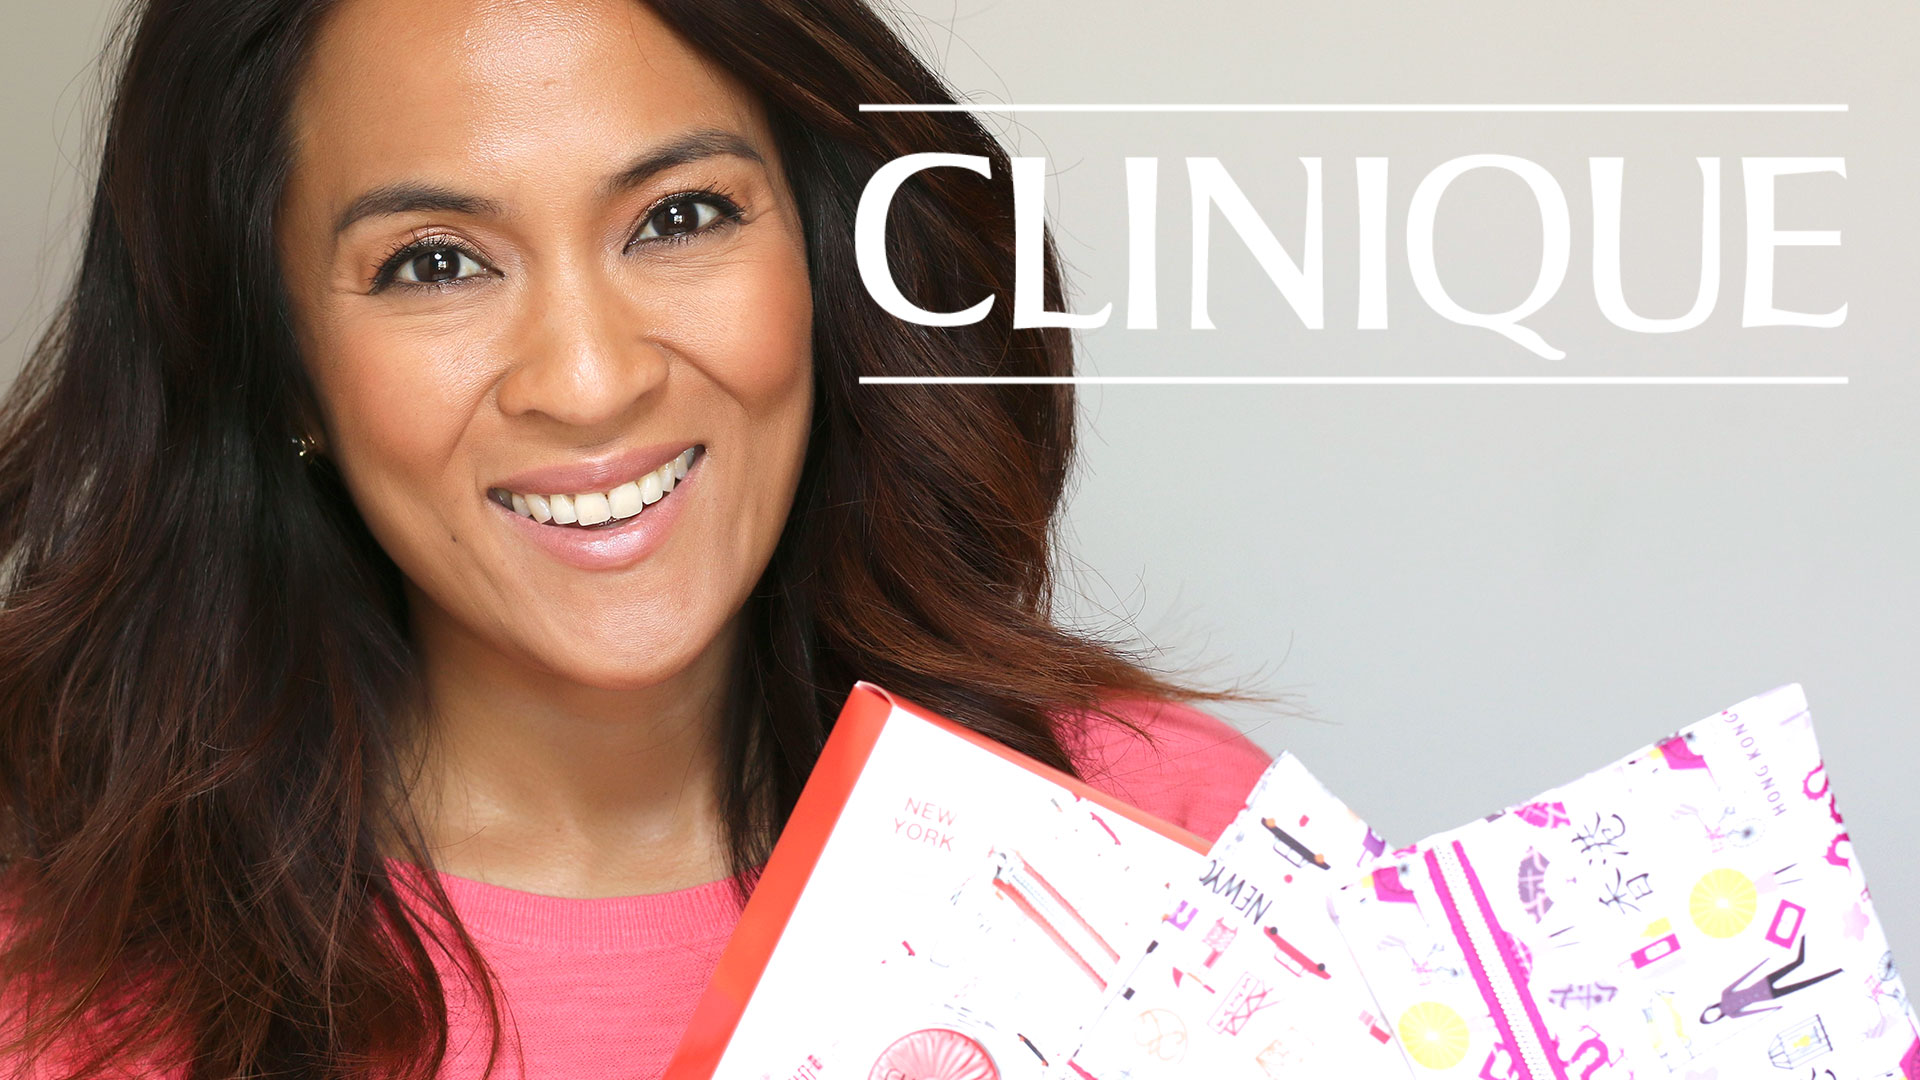 Clinique Travel Boxes: Fall 2015 - Makeup and Beauty Blog